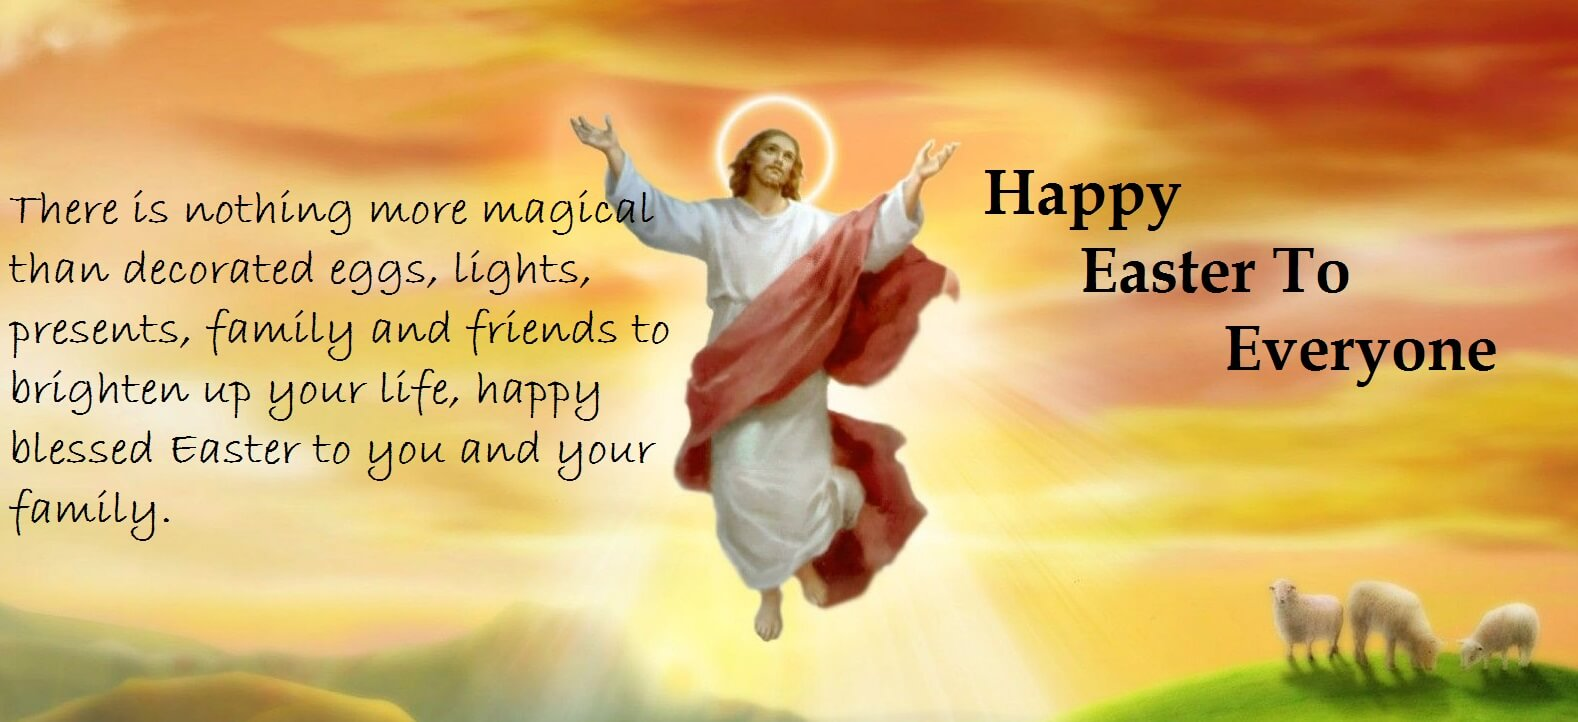 Happy Easter 2017 Quotes Wishes Images, Photos & Pics  Best Wishes